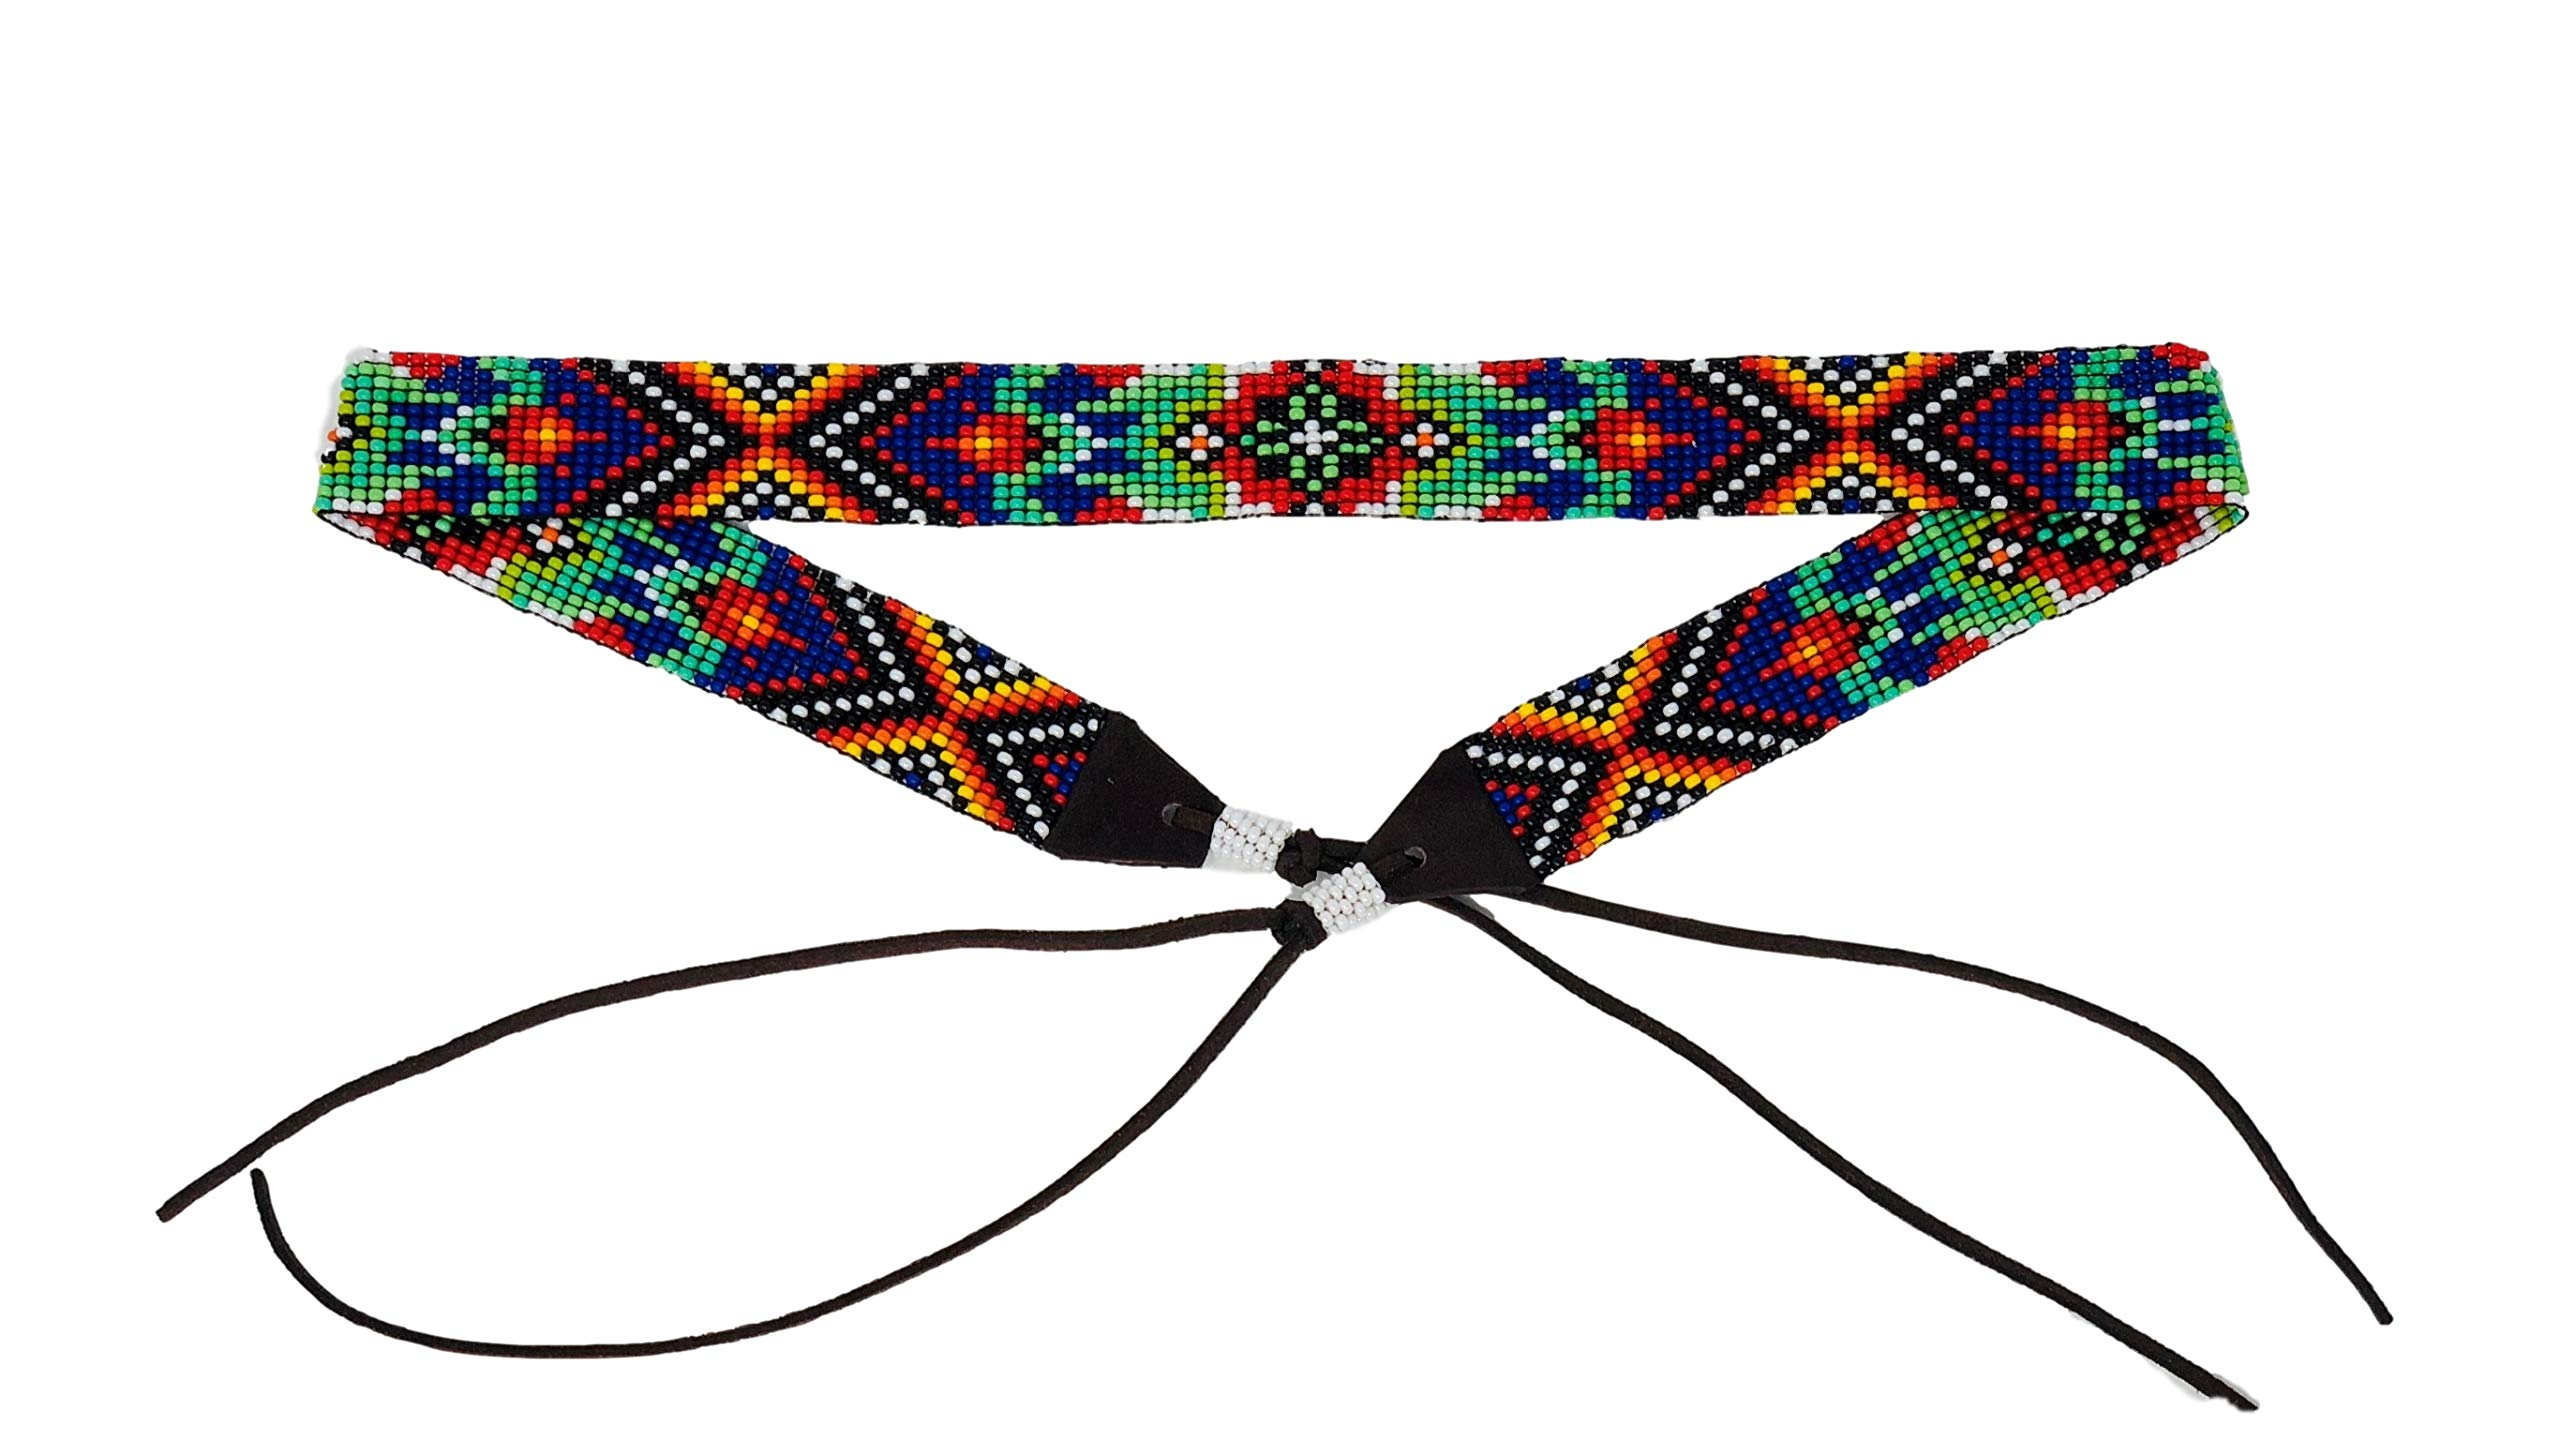 Mayan Arts Cowgirl Western Beaded Hat Band, Leather Ties, Men, Women, Handmade in Guatemala 7/8 Inches x 21 Inches (Purple and Green)